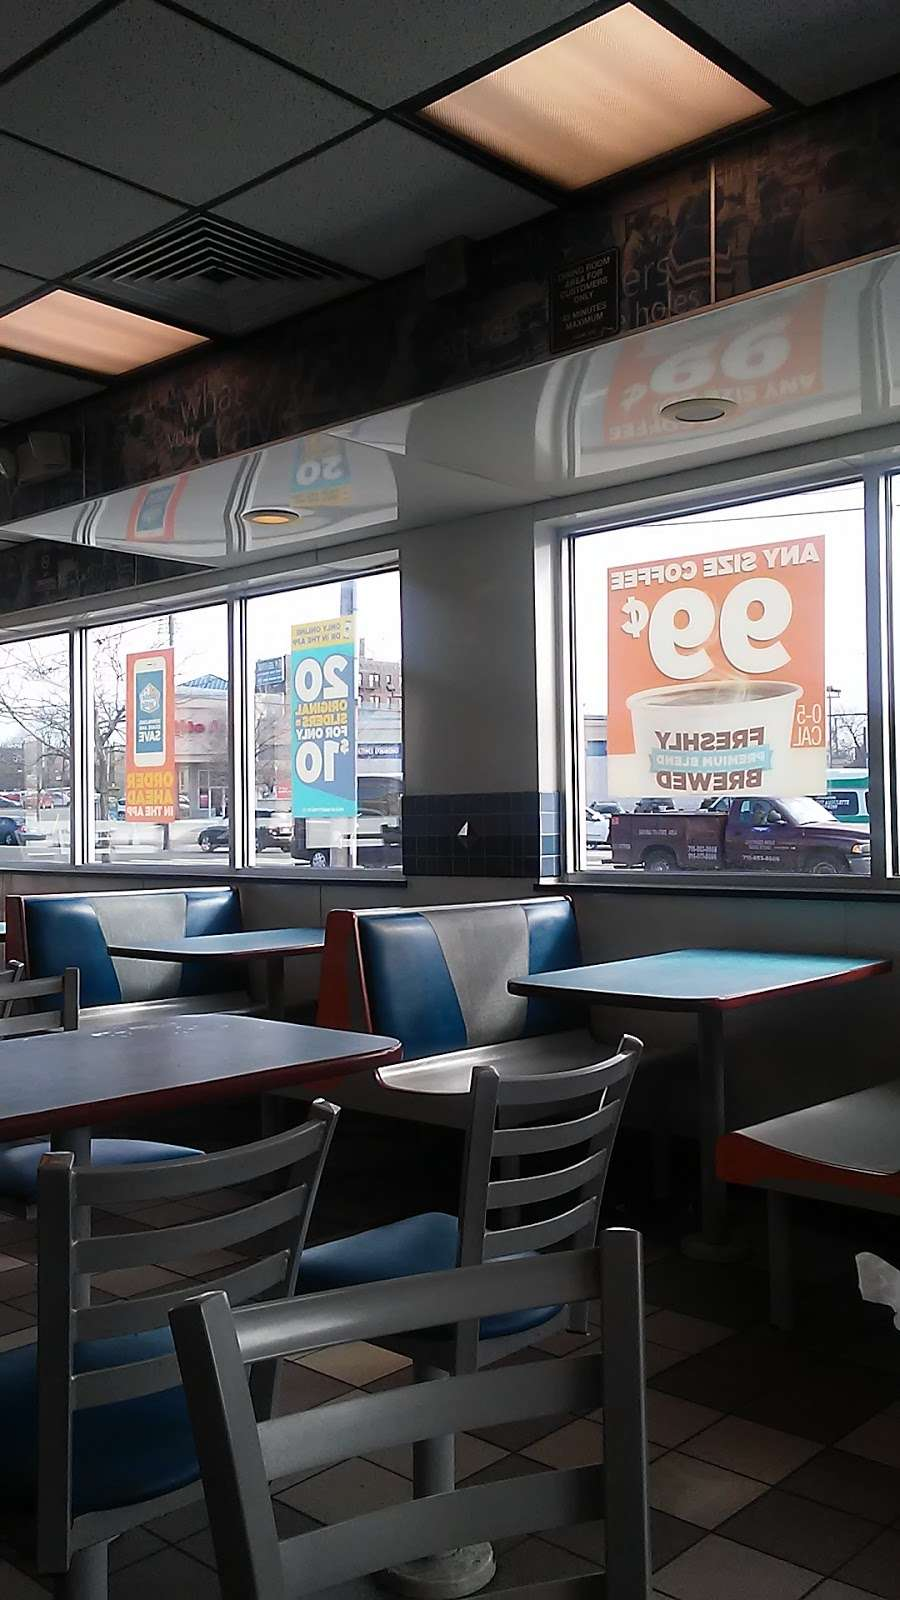 White Castle - restaurant  | Photo 2 of 10 | Address: 2701 Boston Rd, Bronx, NY 10467, USA | Phone: (718) 231-4978